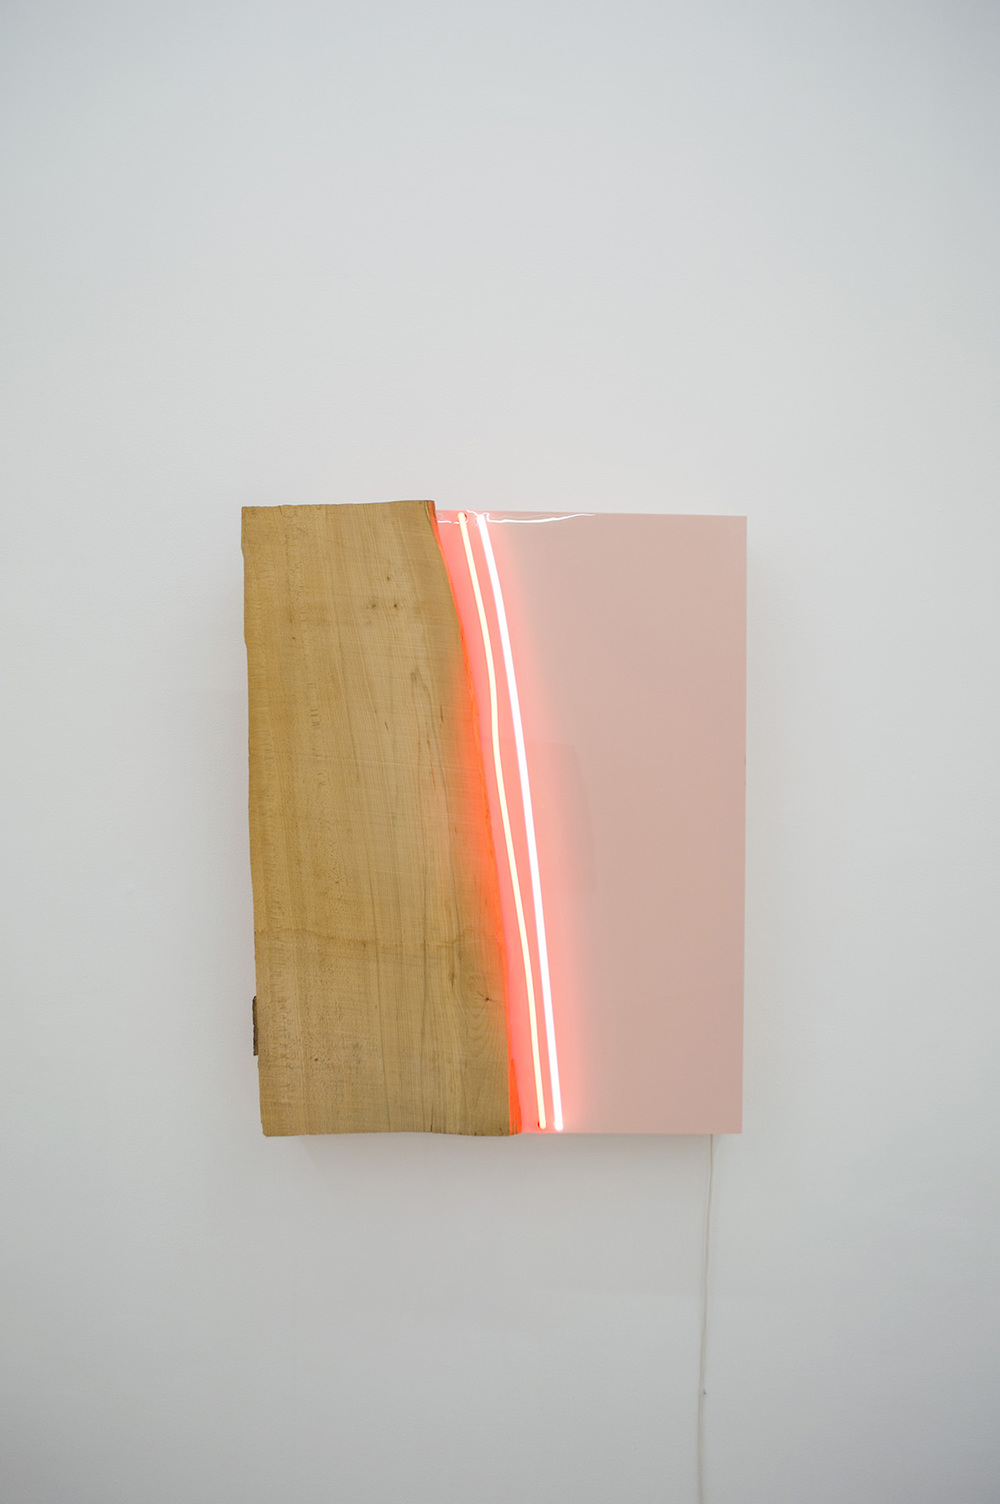 Untitled 1978 100 x 80 x 18 cm Neon light, acrylic, and wood